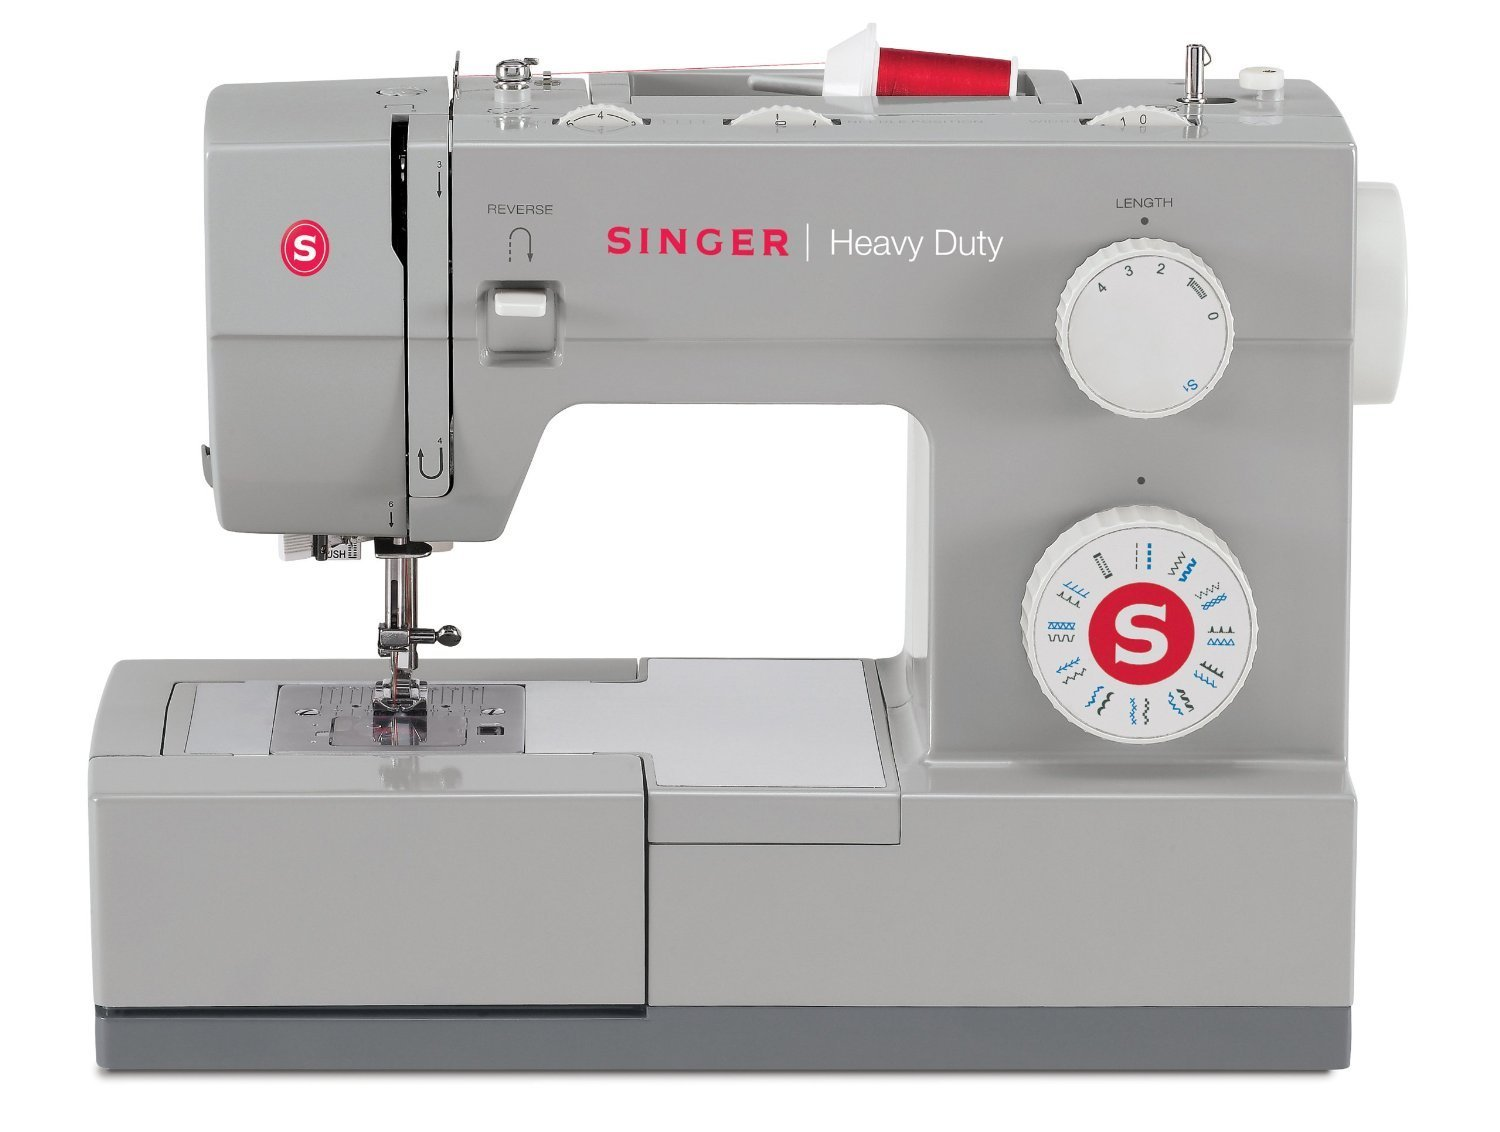 Singer Sewing and Embroidery Machine: May lack in some features, but could meet all your needs